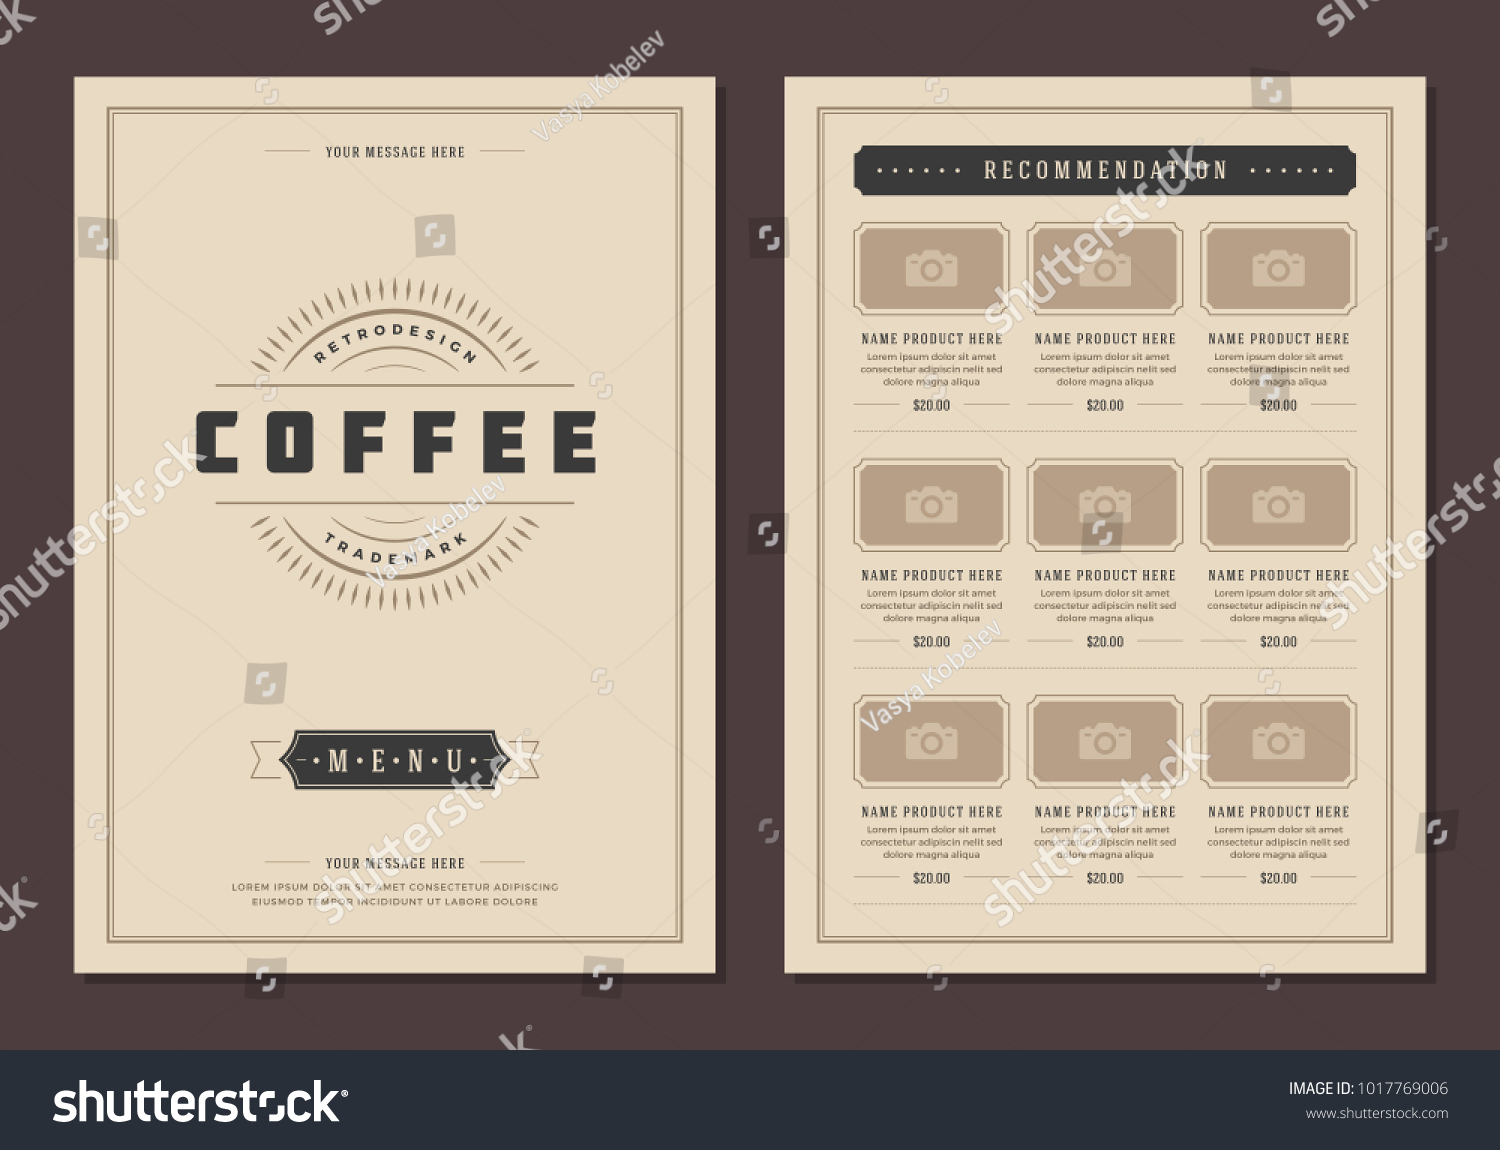 Coffee Shop Logo And Menu Design Vector Brochure Template.